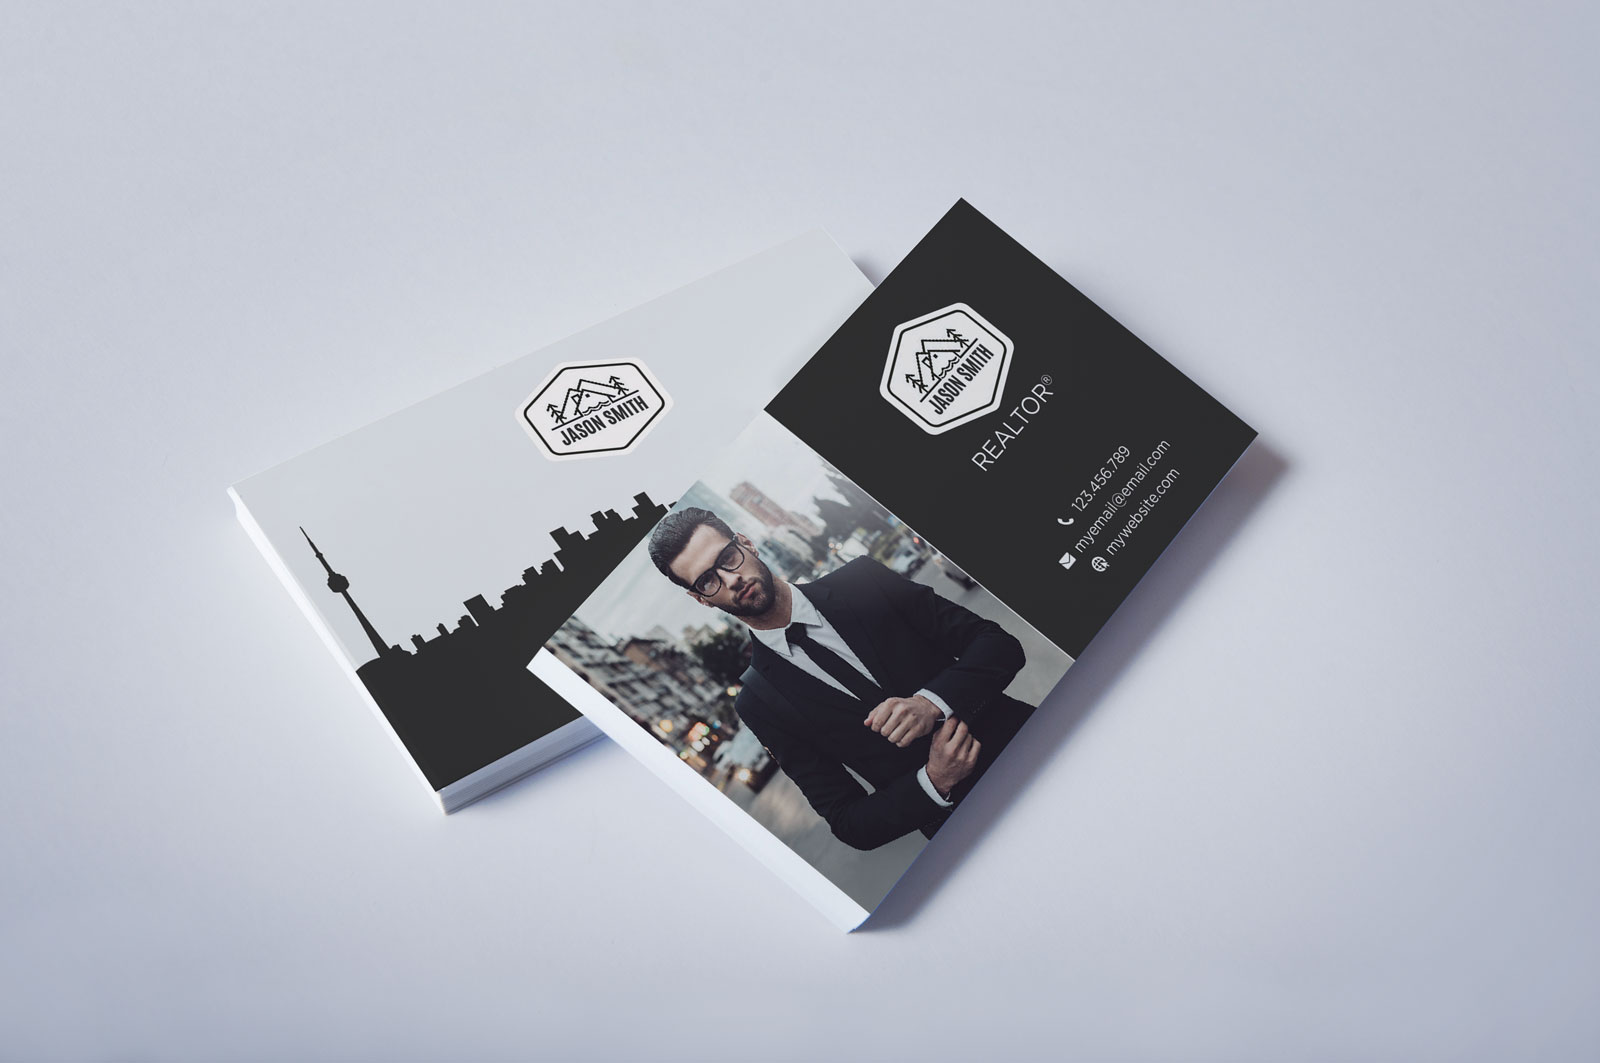 Free Real Estate Agent Business Card Download #3